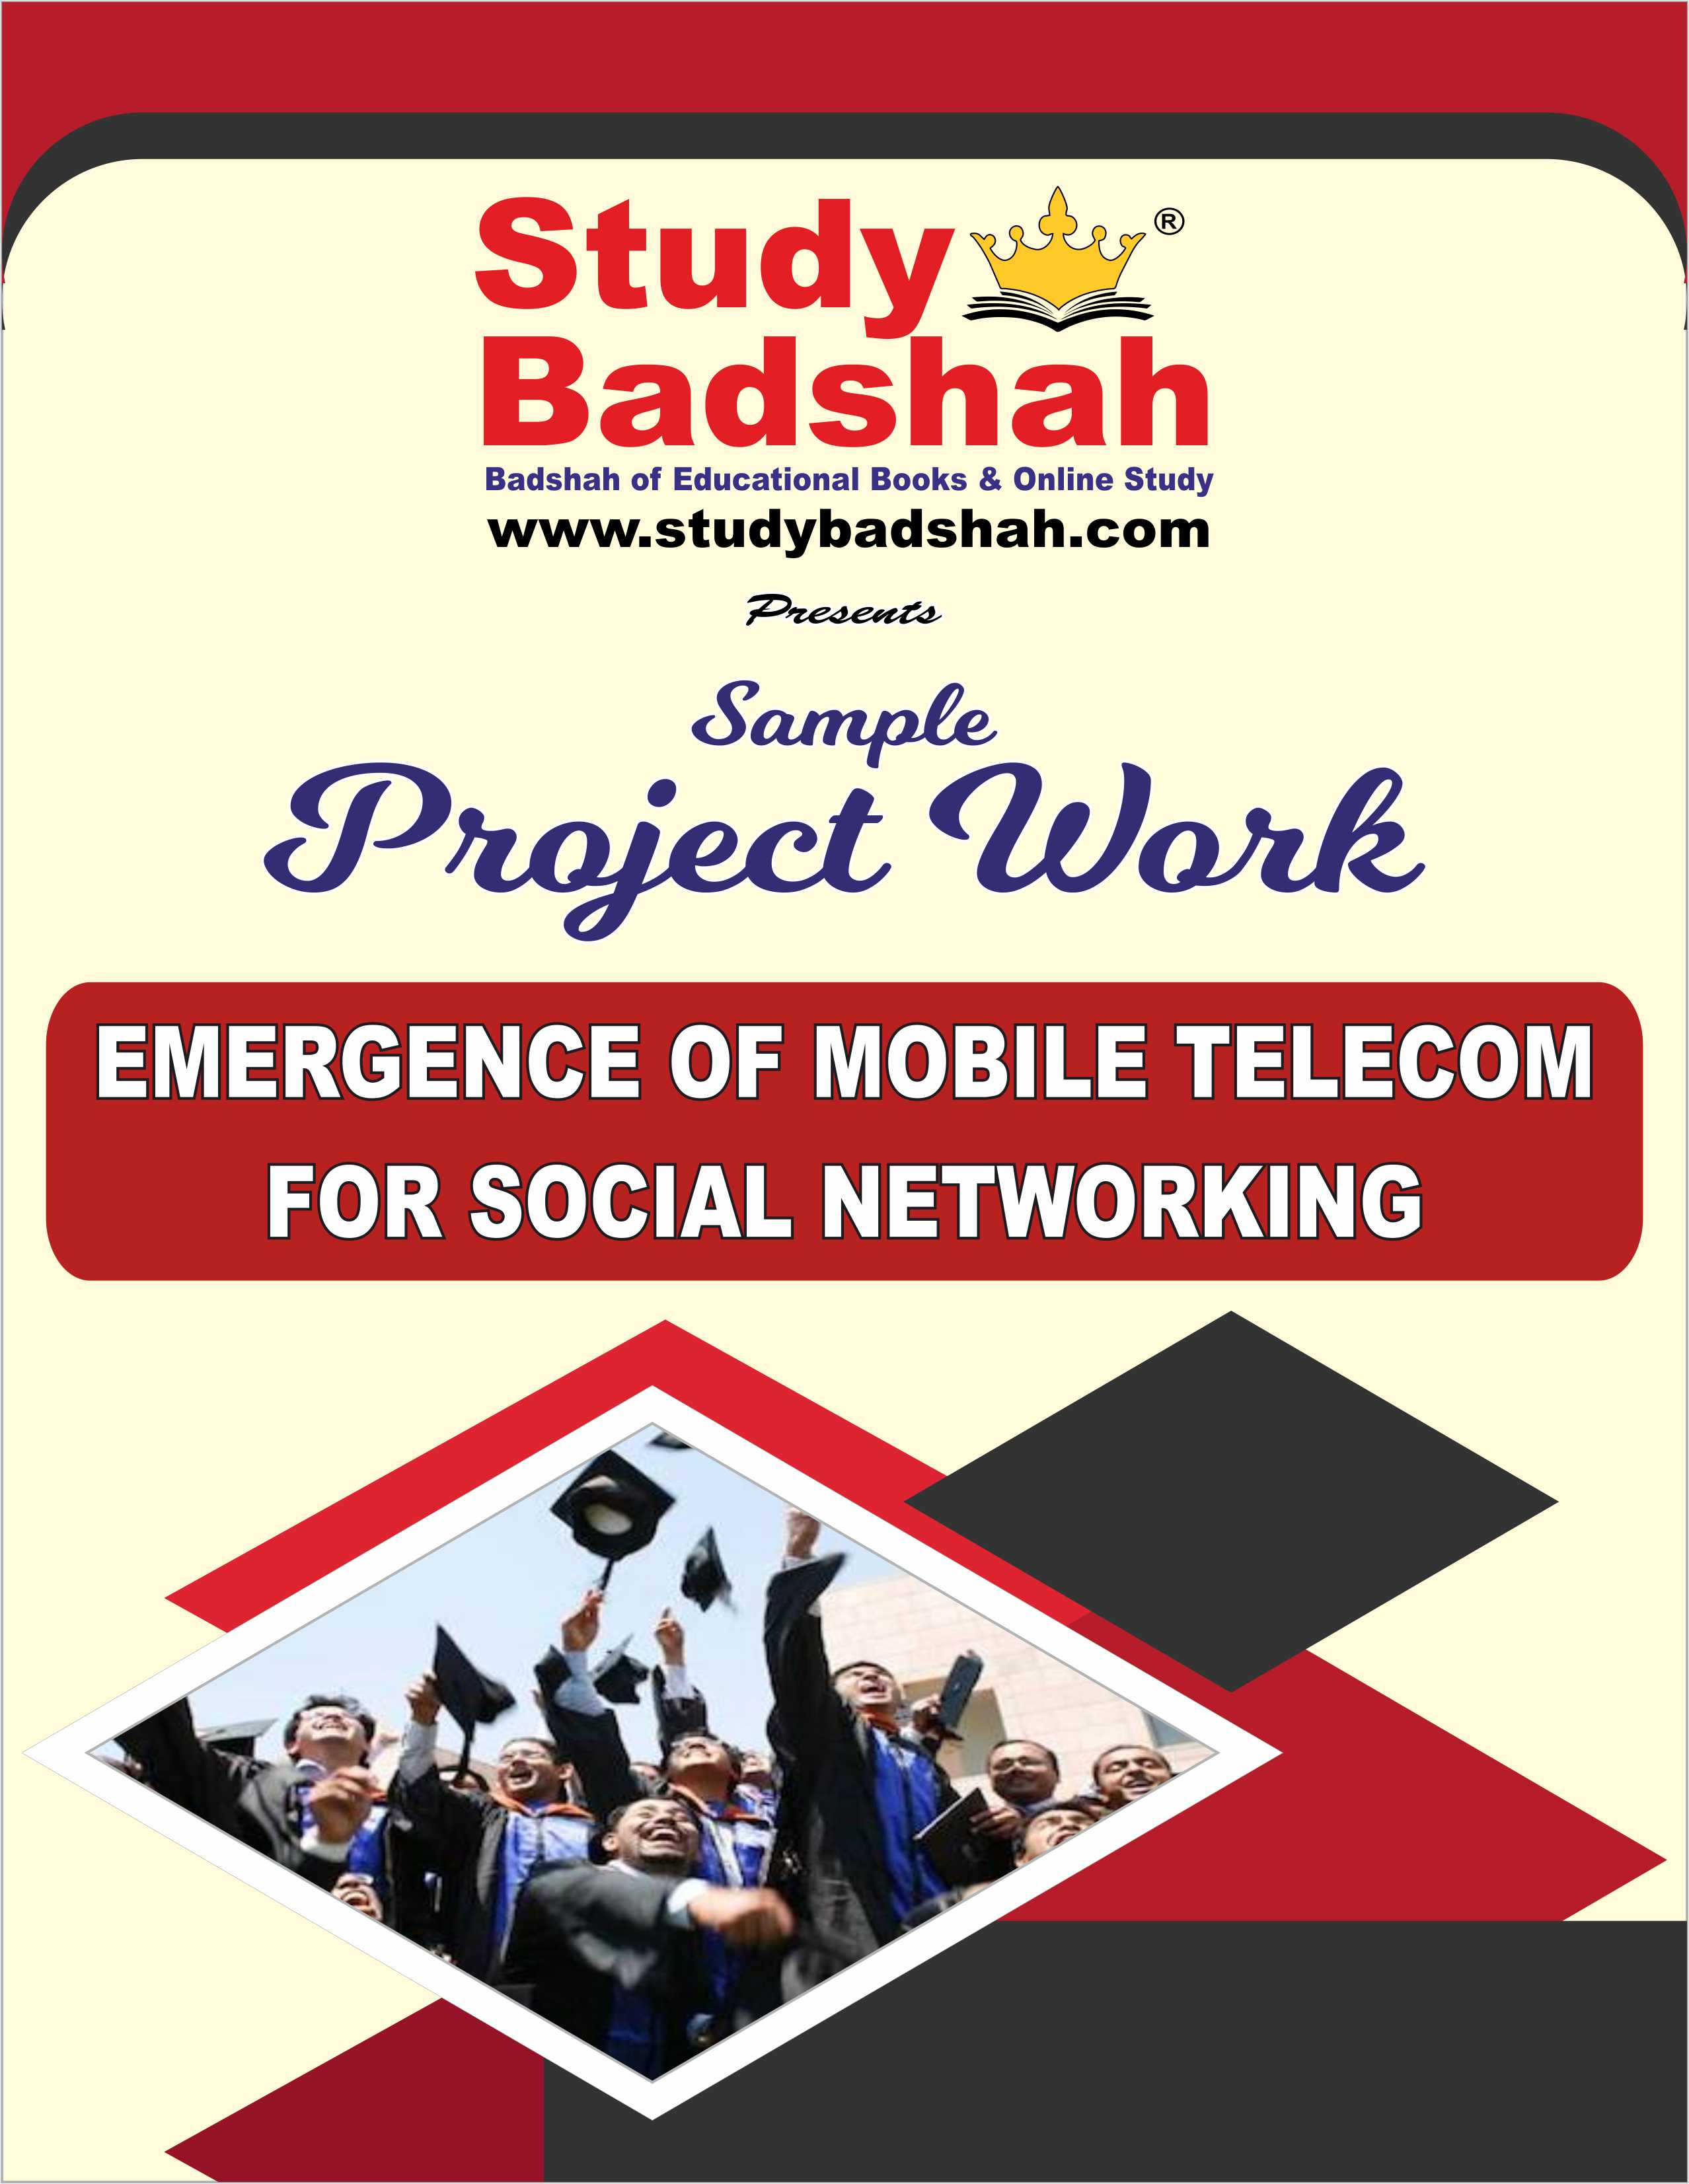 EMERGENCE OF MOBILE TELECOM FOR SOCIAL NETWORKING